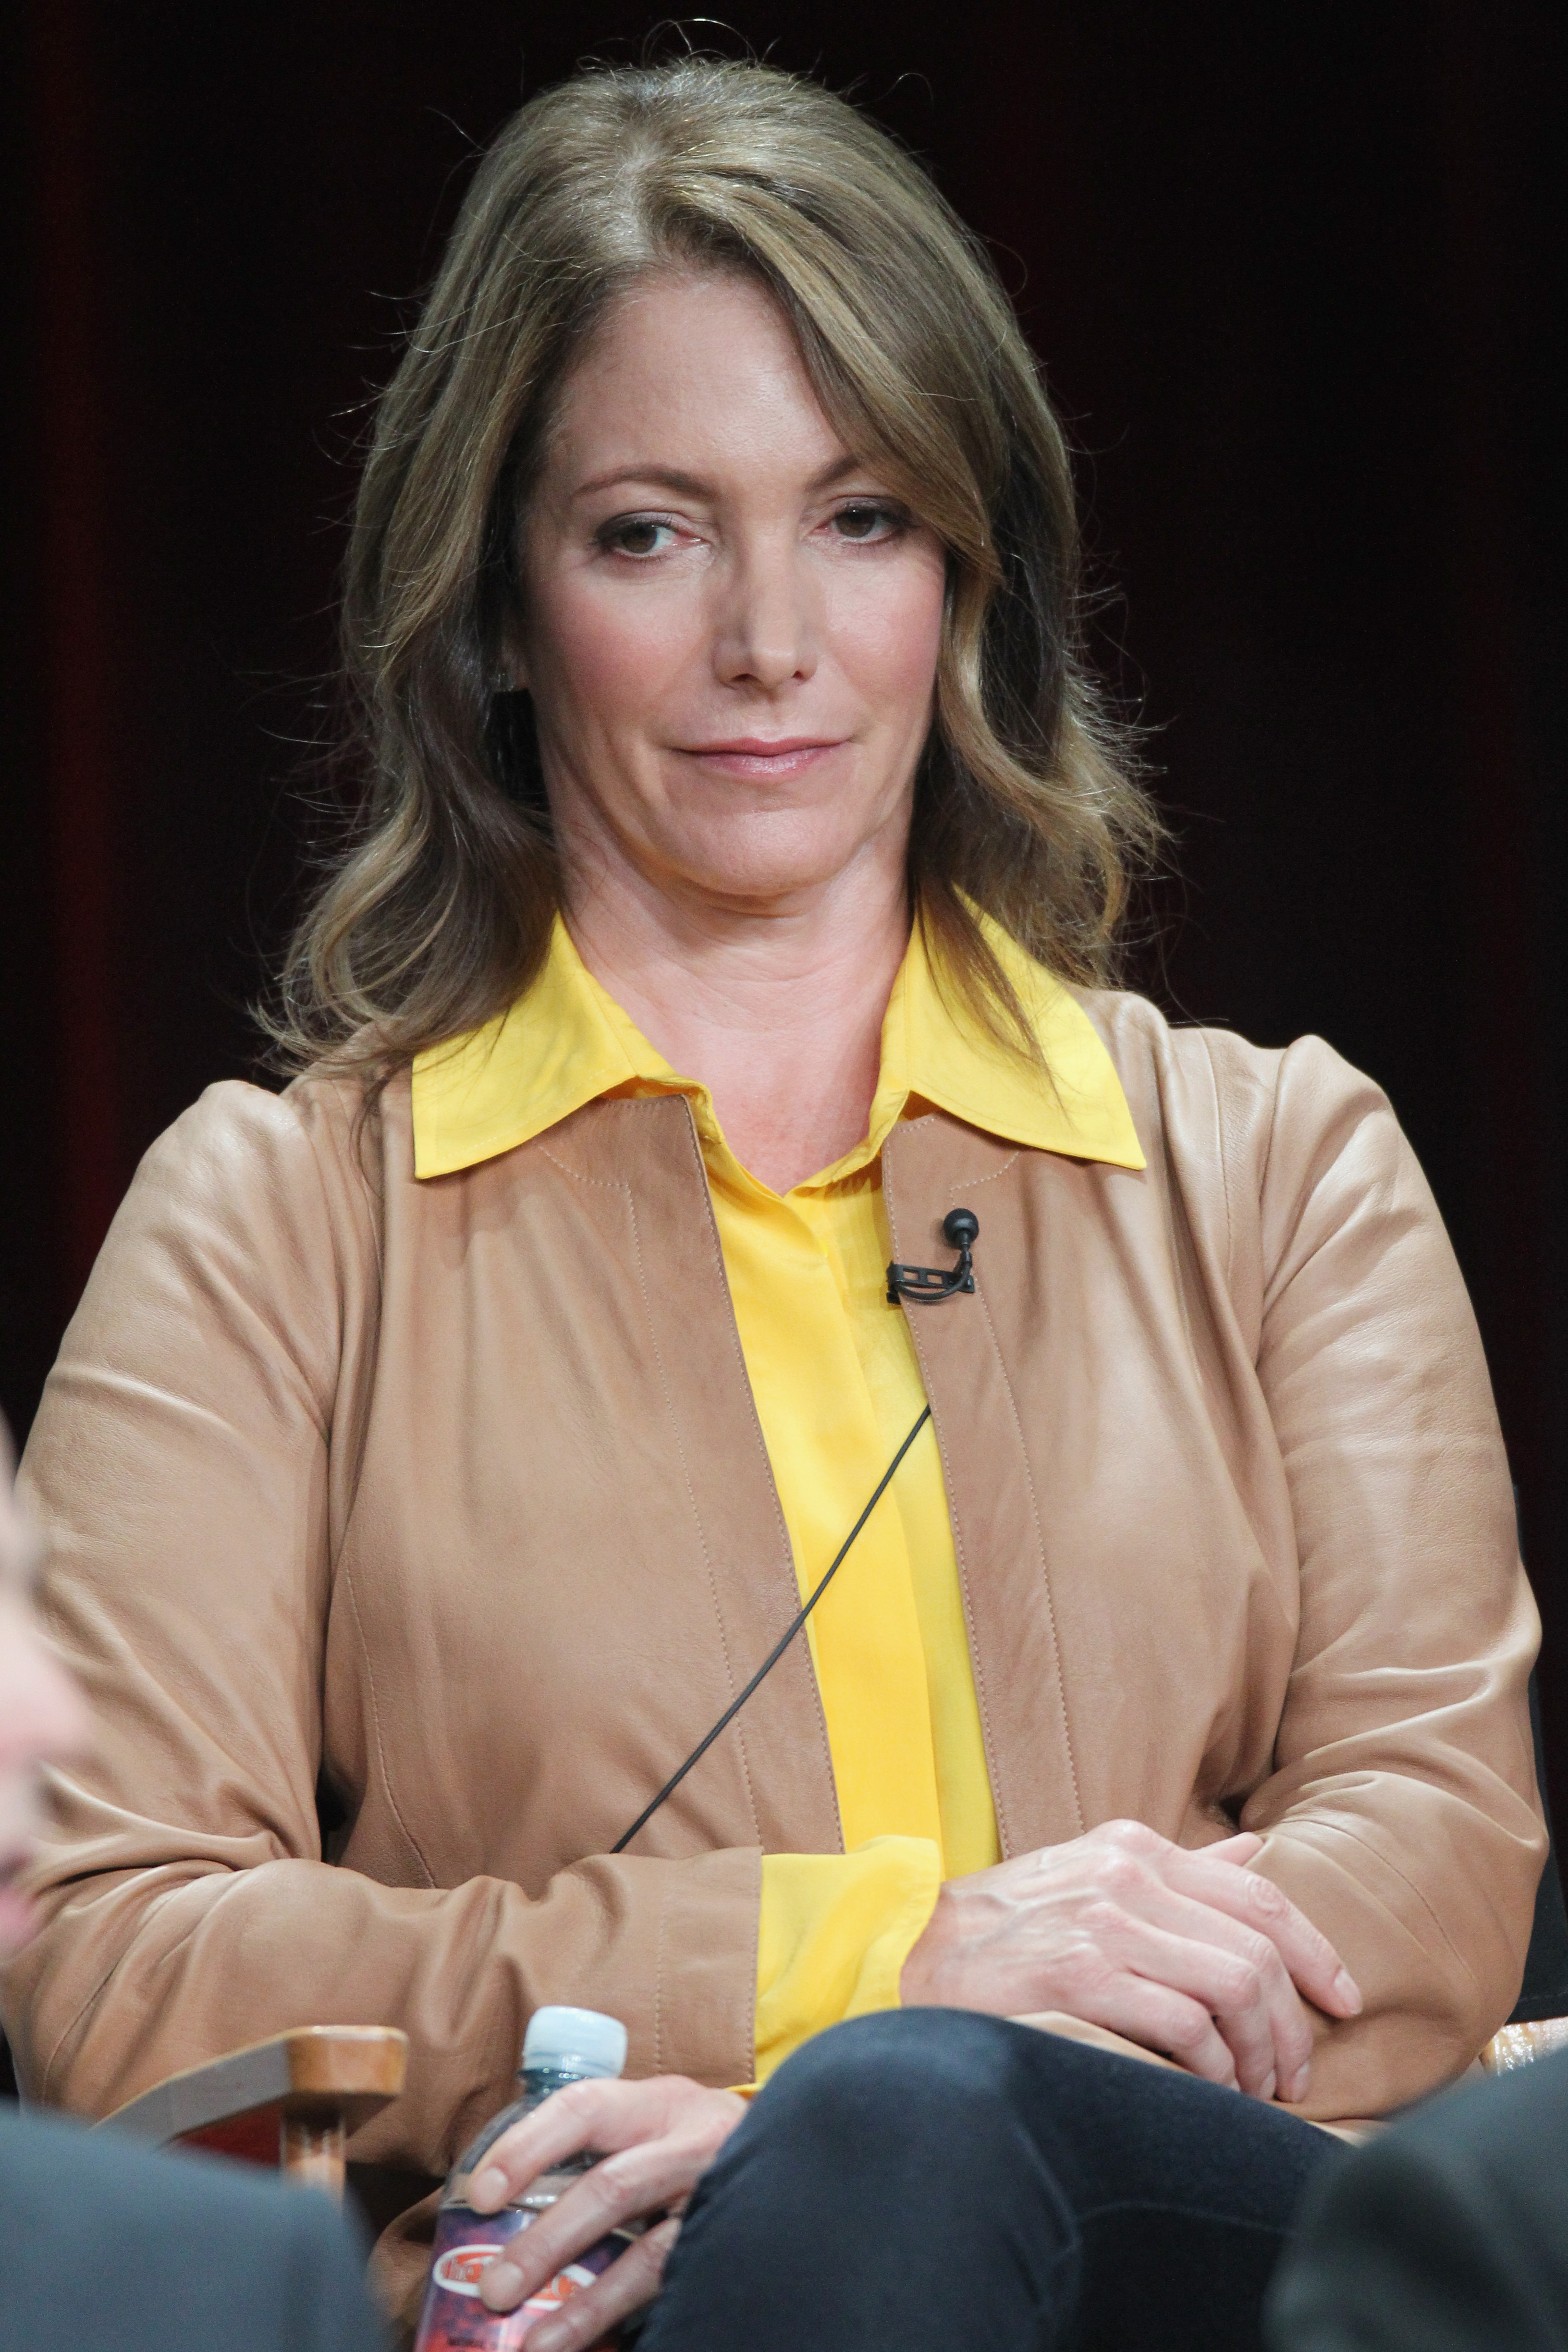 Executive producer Carla Kettner supported the cast of The Mob Doctor during the panel.